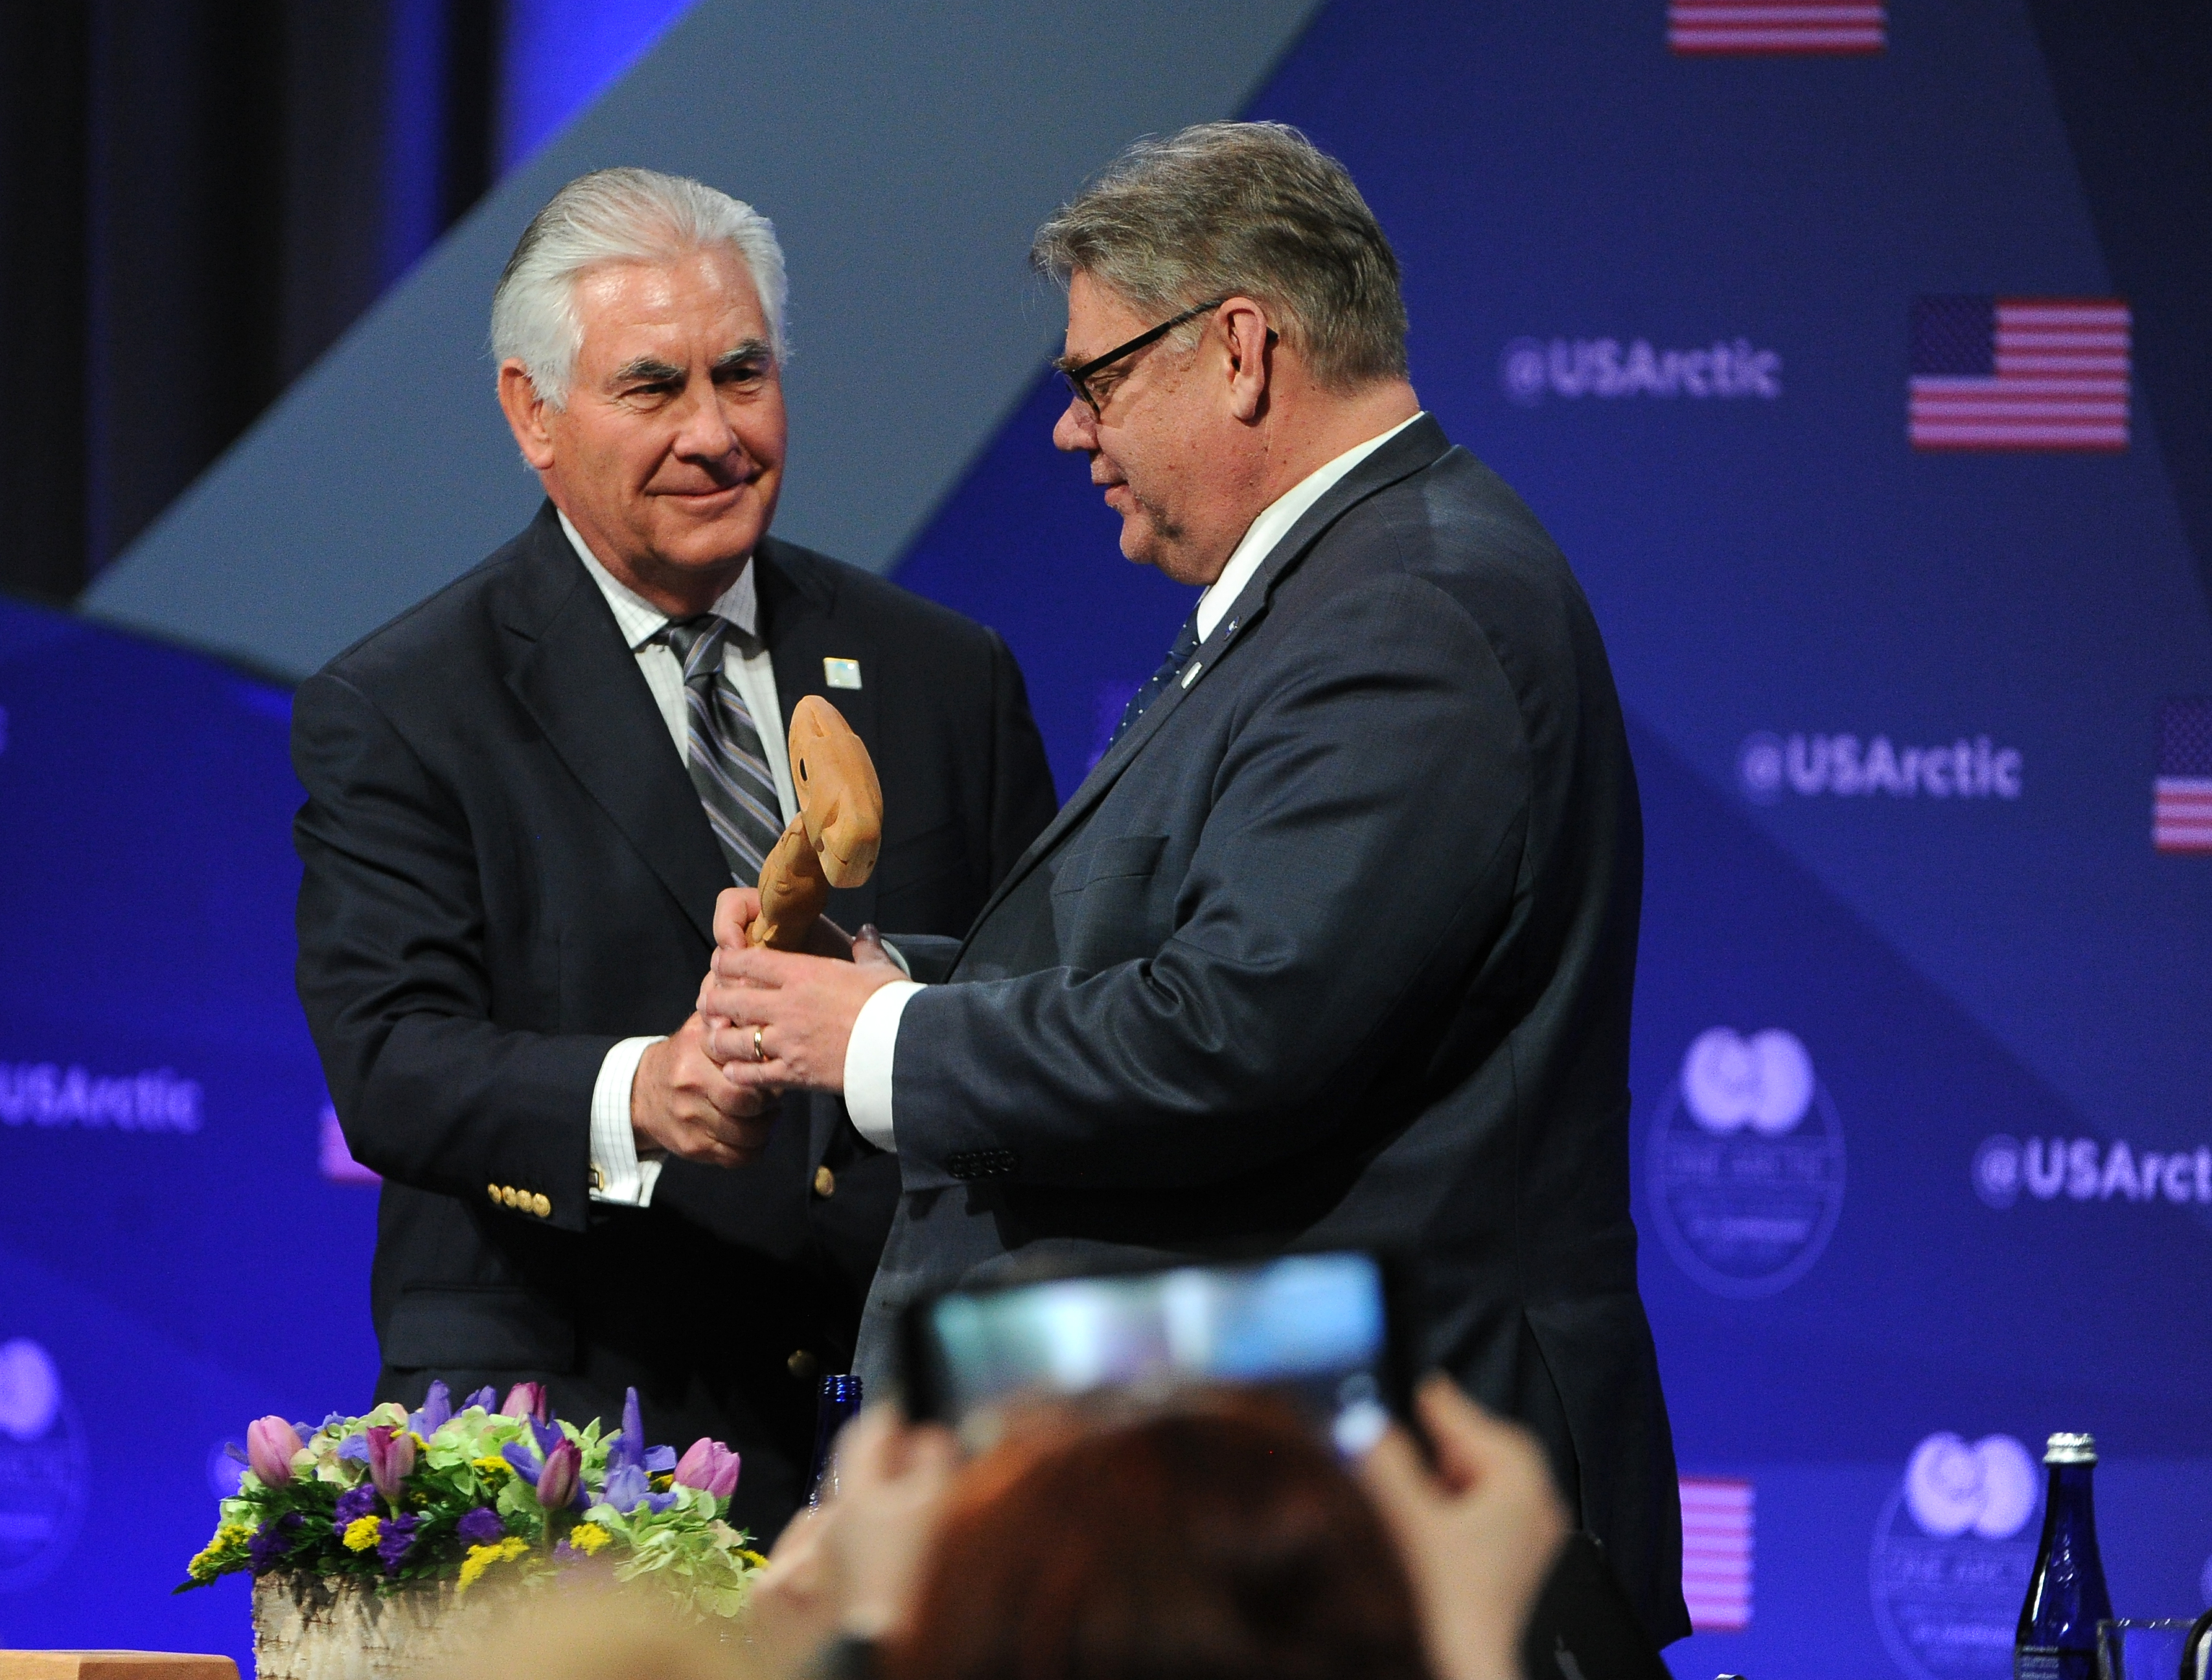 US Secretary of State Rex Tillerson pass the gavel to the Minister of Foreign Affairs of Finland, Timo Soini, as the chair of the Arctic Council is passed to Finland at the Carlson Center in Fairbanks, Alaska on Thursday, May 11, 2017. (Bob Hallinen / Alaska Dispatch News)